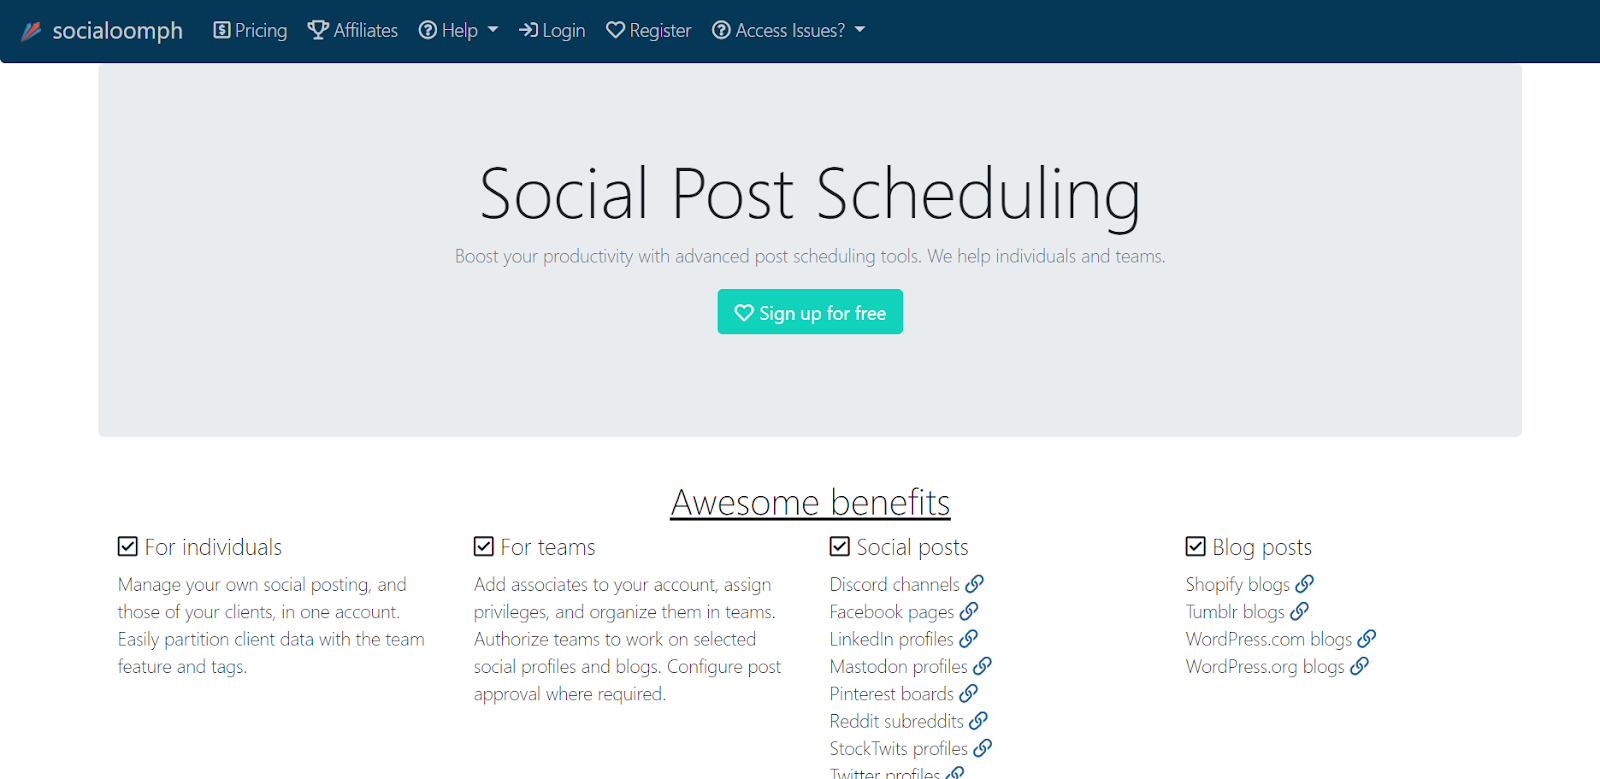 SocialOomph: Top 15 Social Media Tools Nigeria Businesses Can Use To Manage Their Accounts